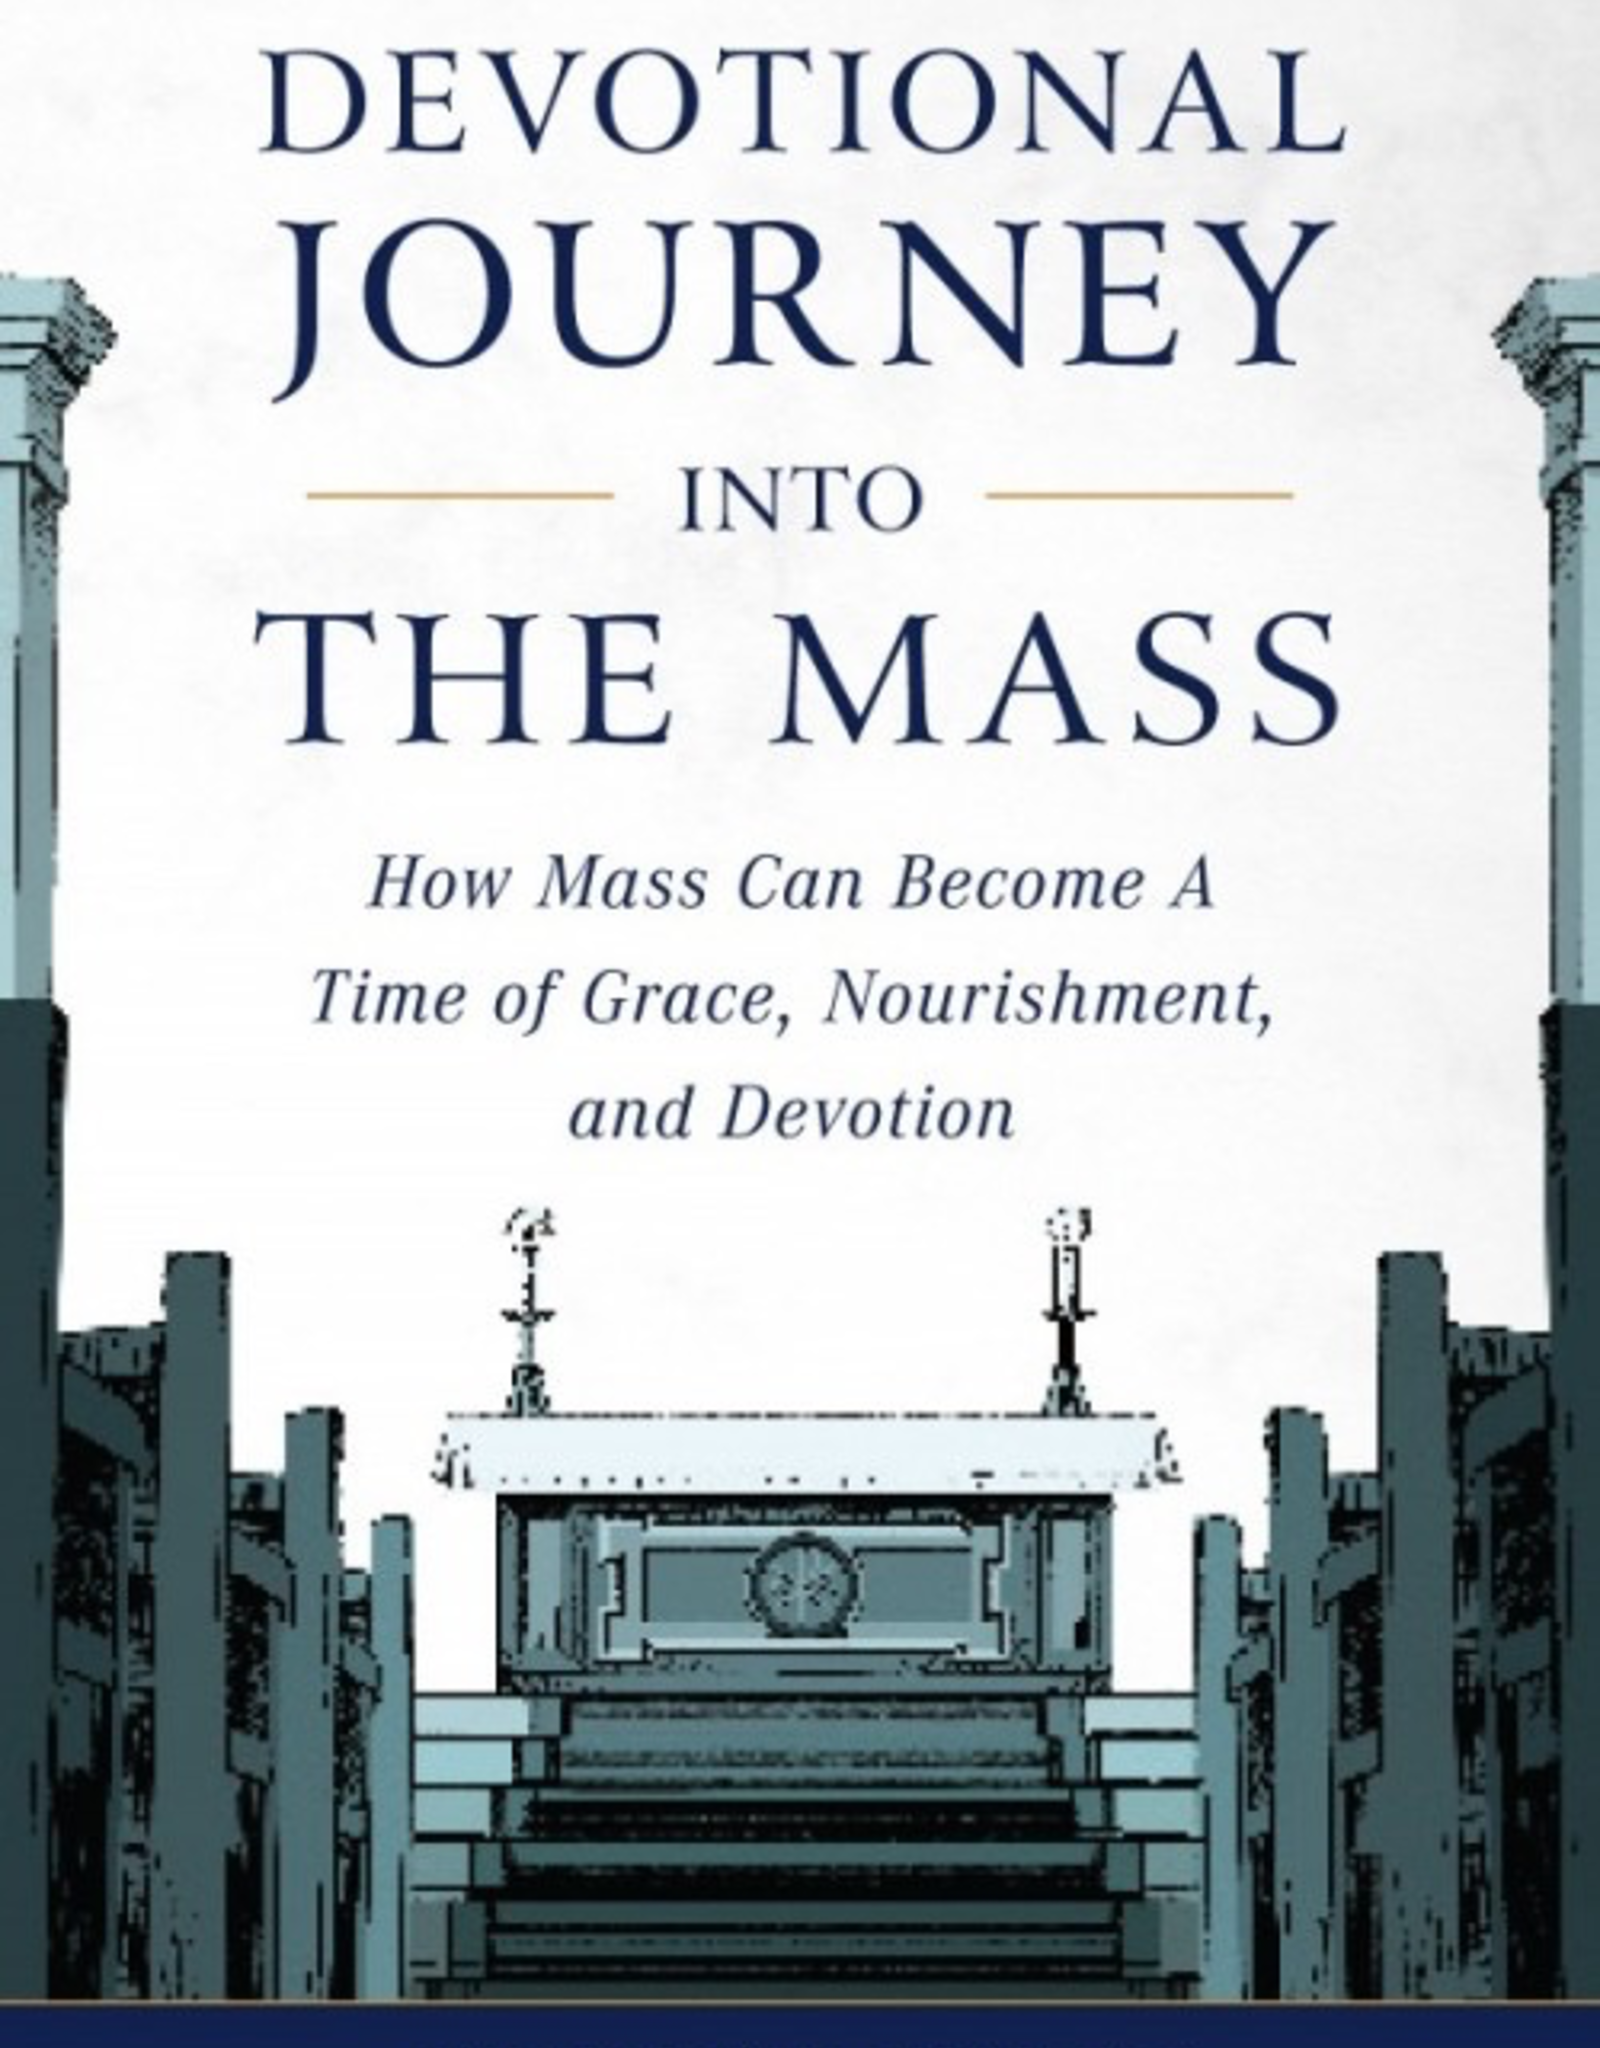 Sophia Institute Devotional Journey into the Mass:  How Mass Can Become a Time of Grace, Nourishment, and Devotion, by Christopher Carstens (paperback)